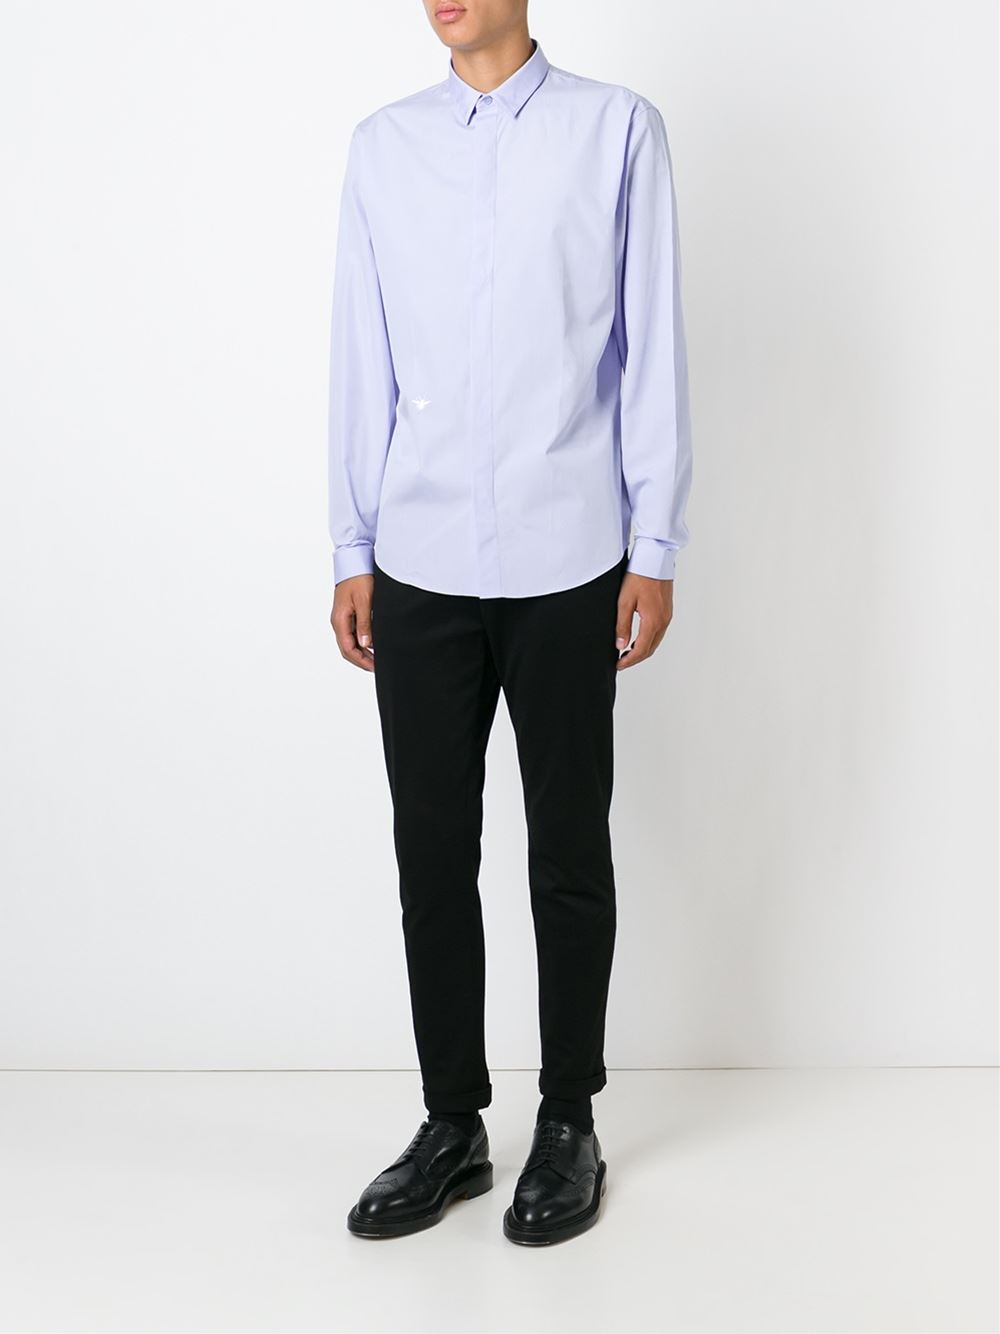 Dior homme bee embroidery shirt in blue for men lyst